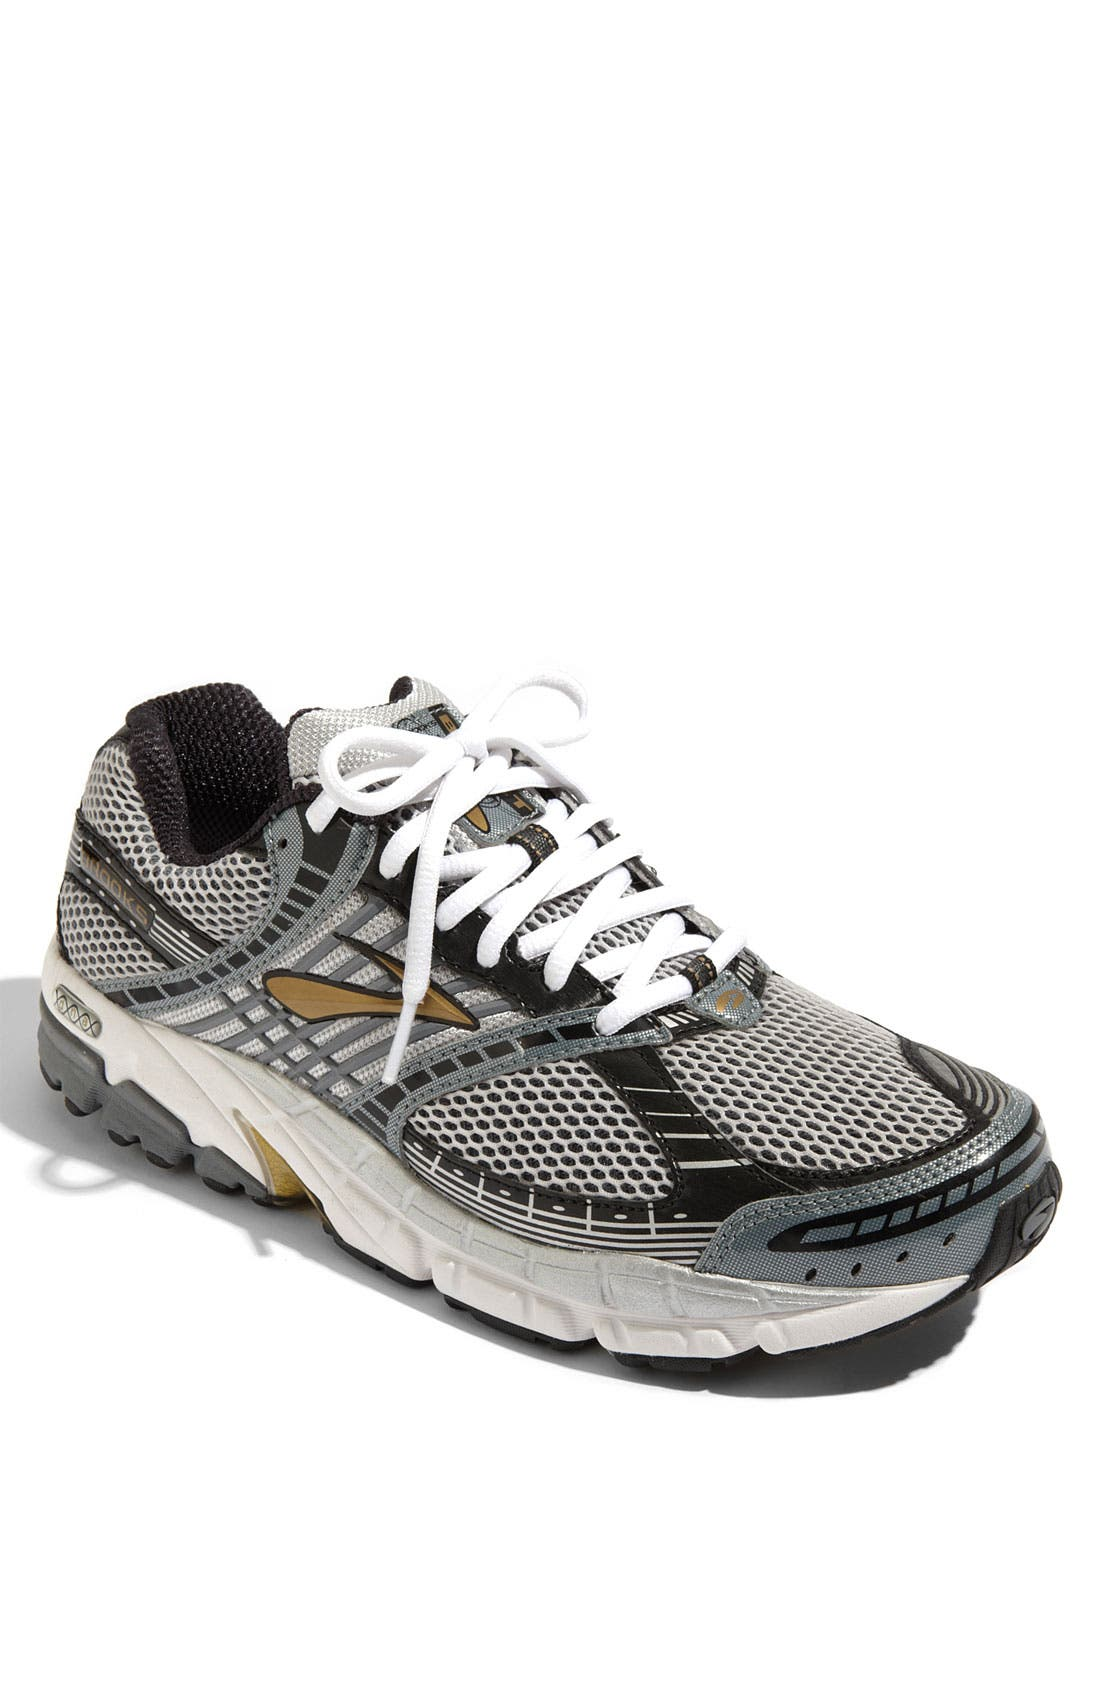 Alternate Image 1 Selected - Brooks 'Beast' Running Shoe (Men)